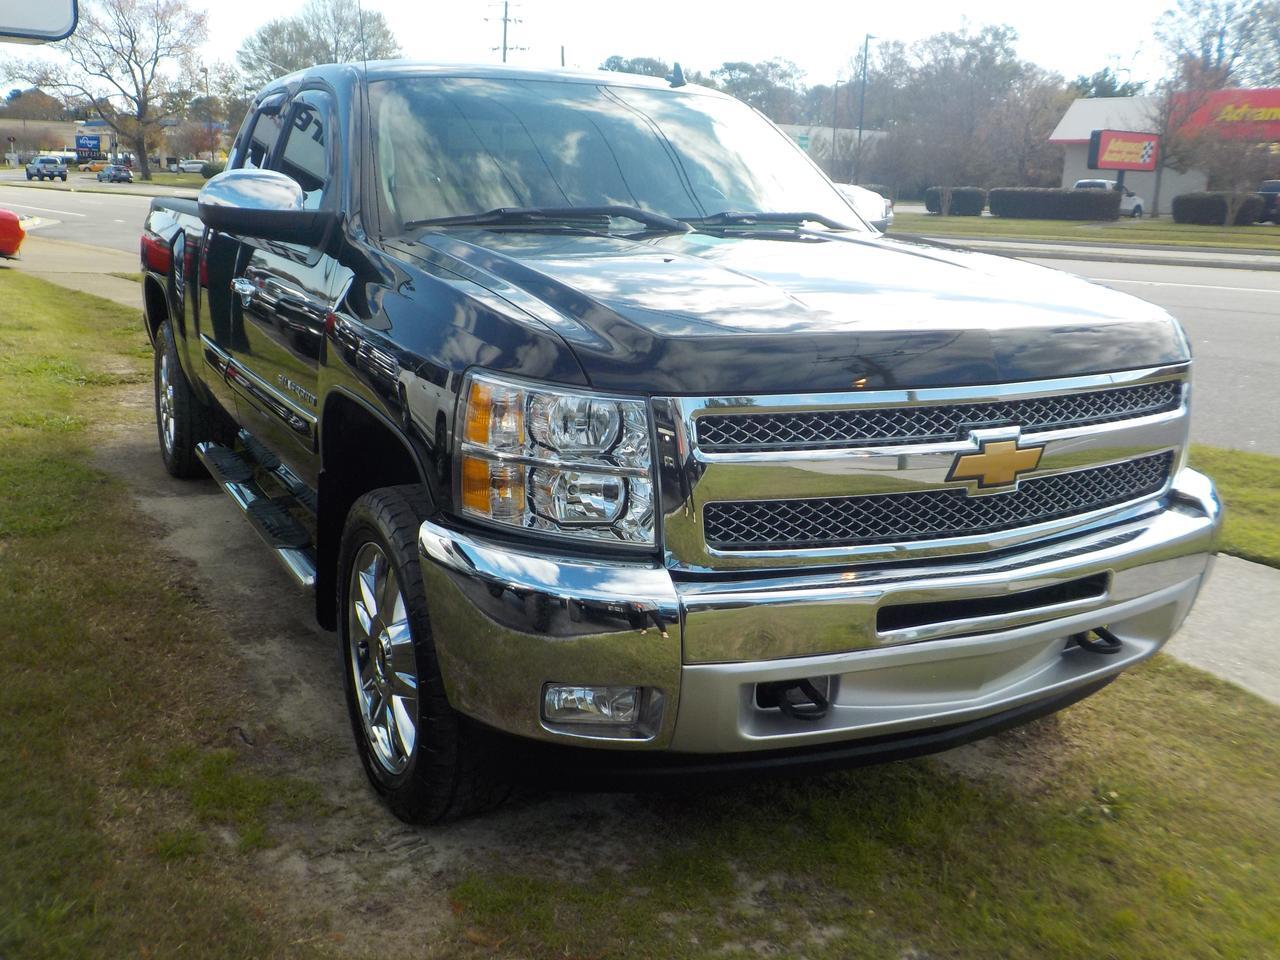 2012 CHEVROELT SILVERADO LT 1500 EXTENDED CAB 4X4, TOW PACKAGE, REMOTE START, BED LINER, SUPER CLEAN! Virginia Beach VA